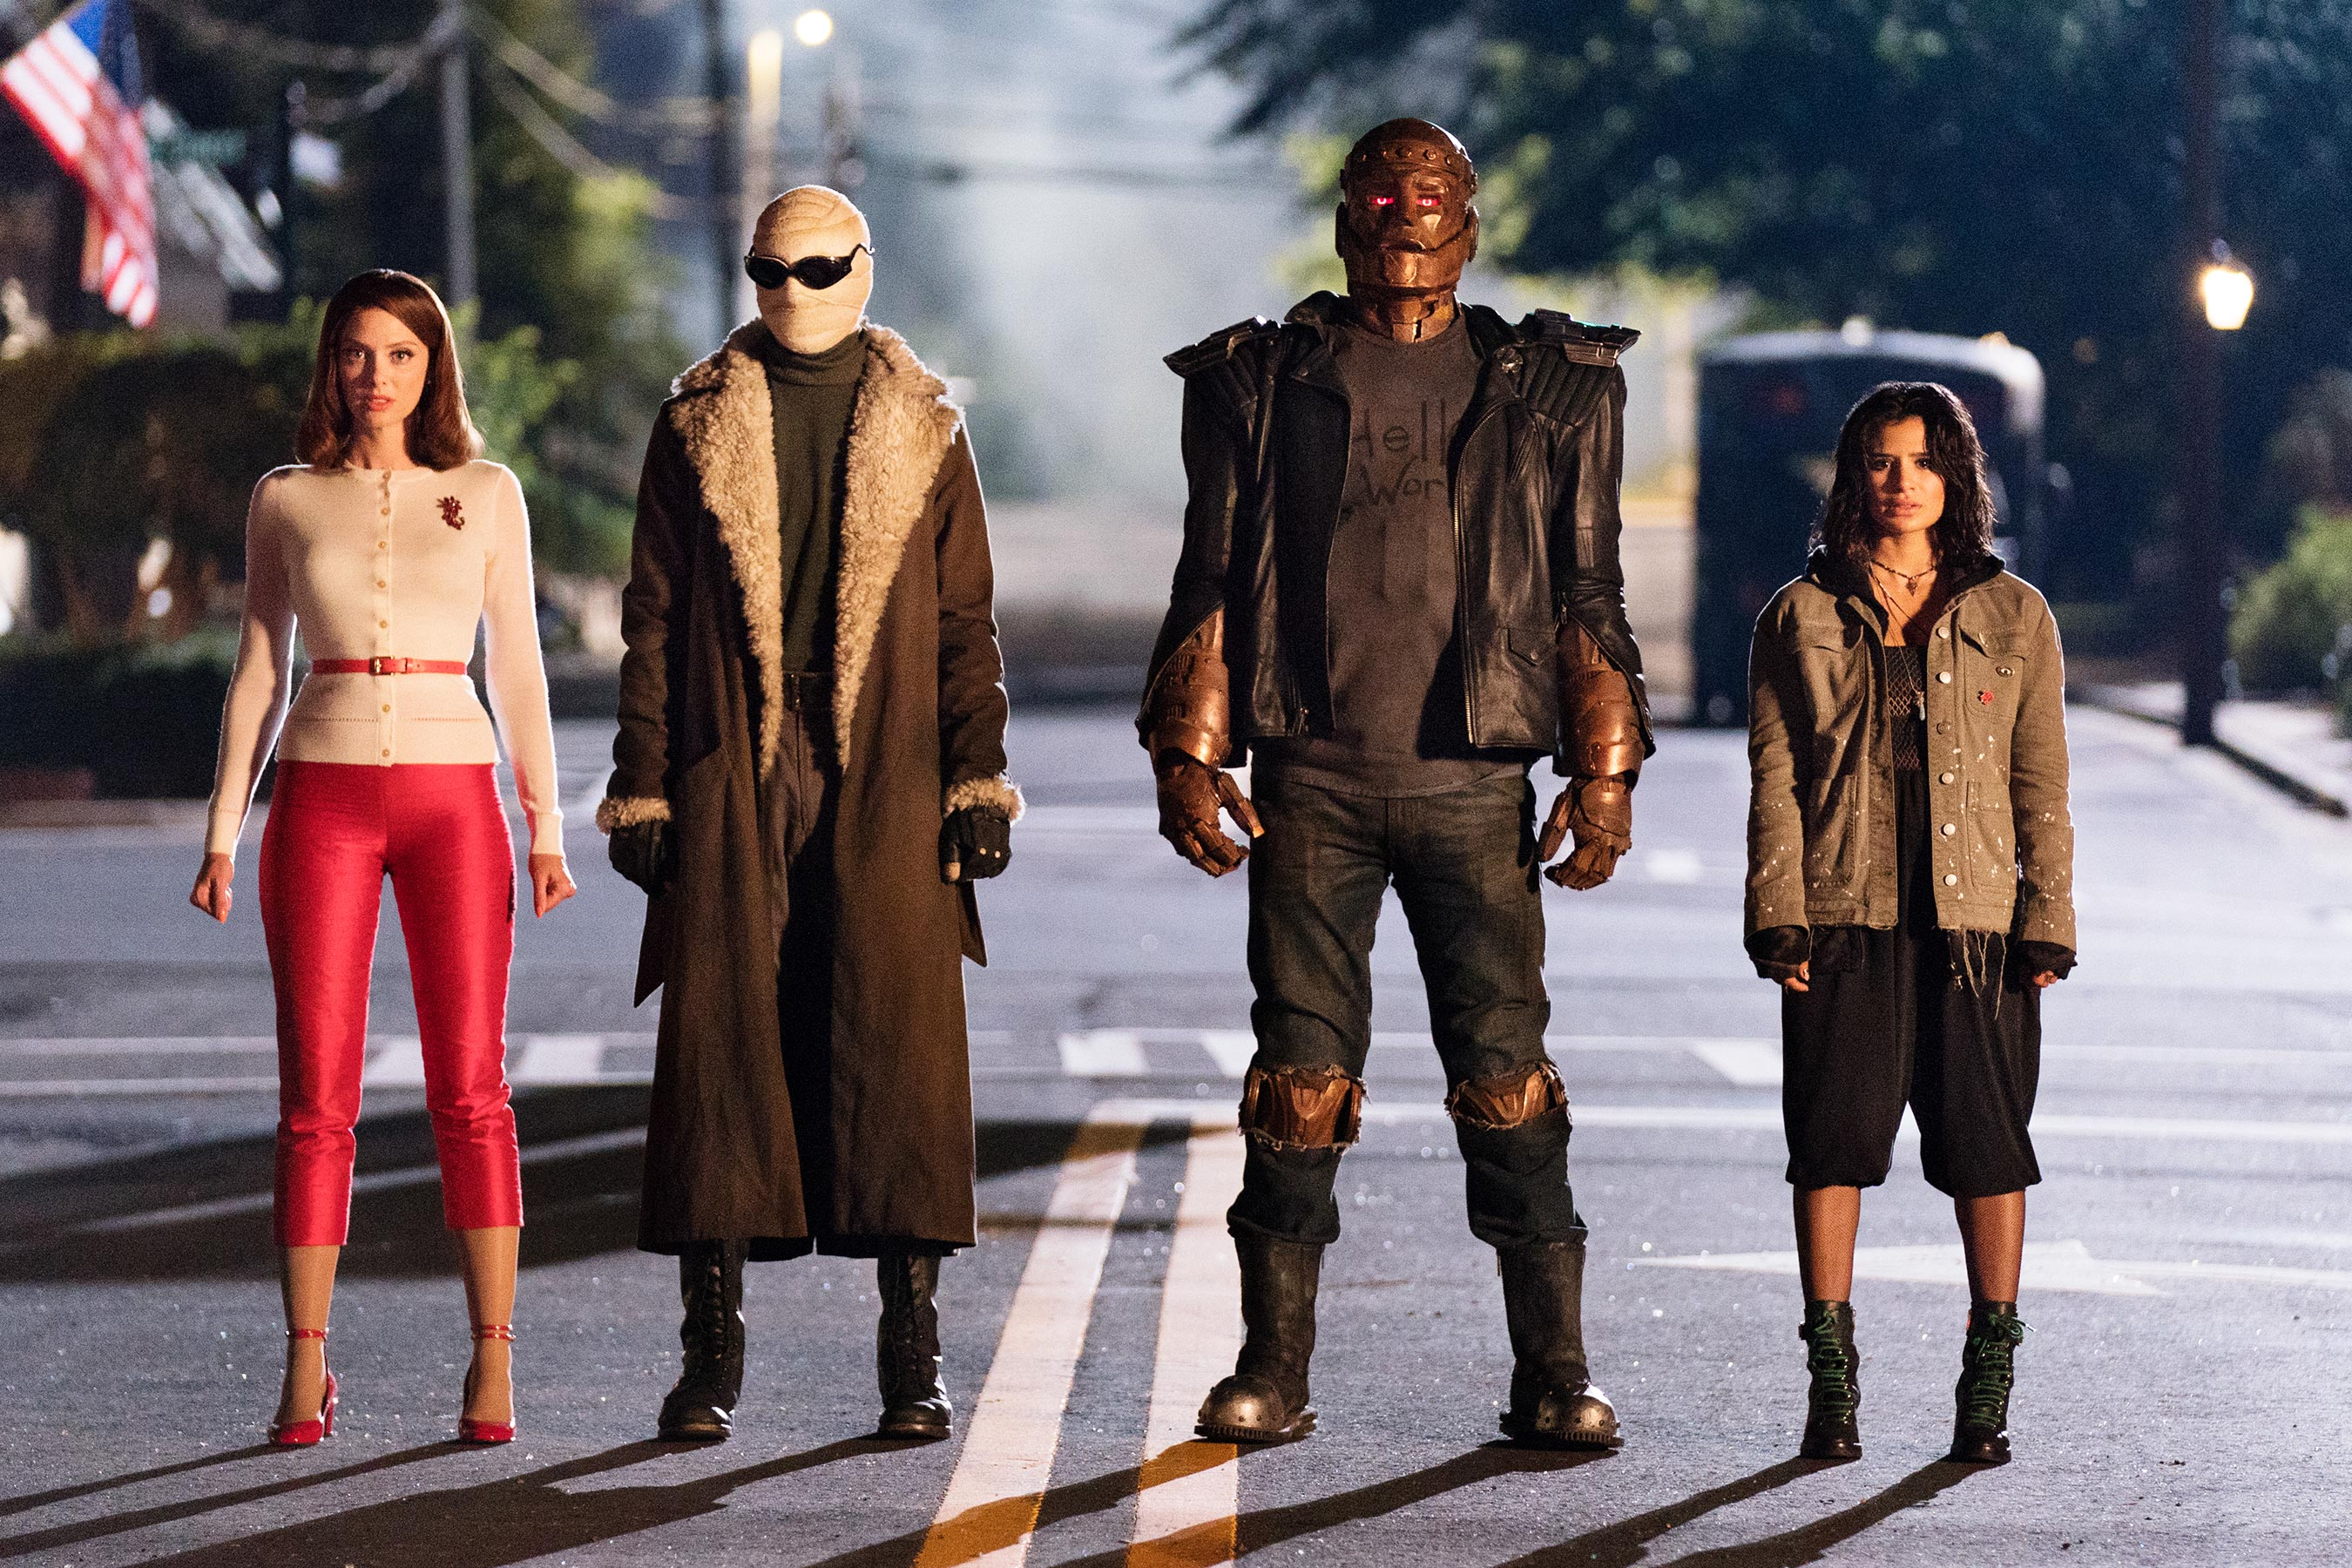 From Doom Patrol, the team of the same name.